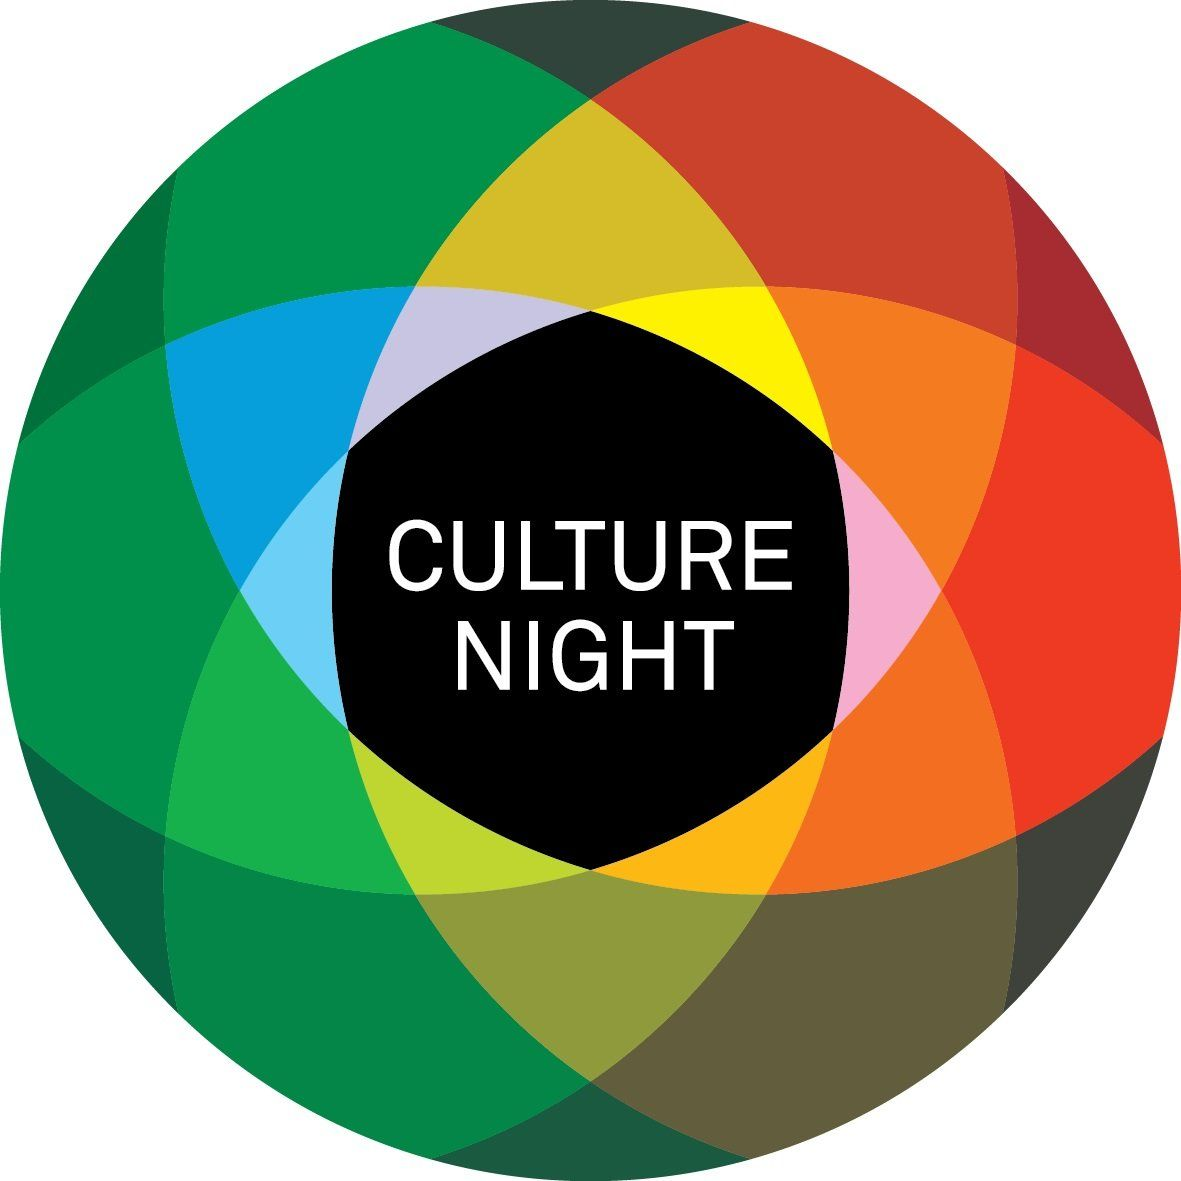 Culture night logo rgb 300ppi